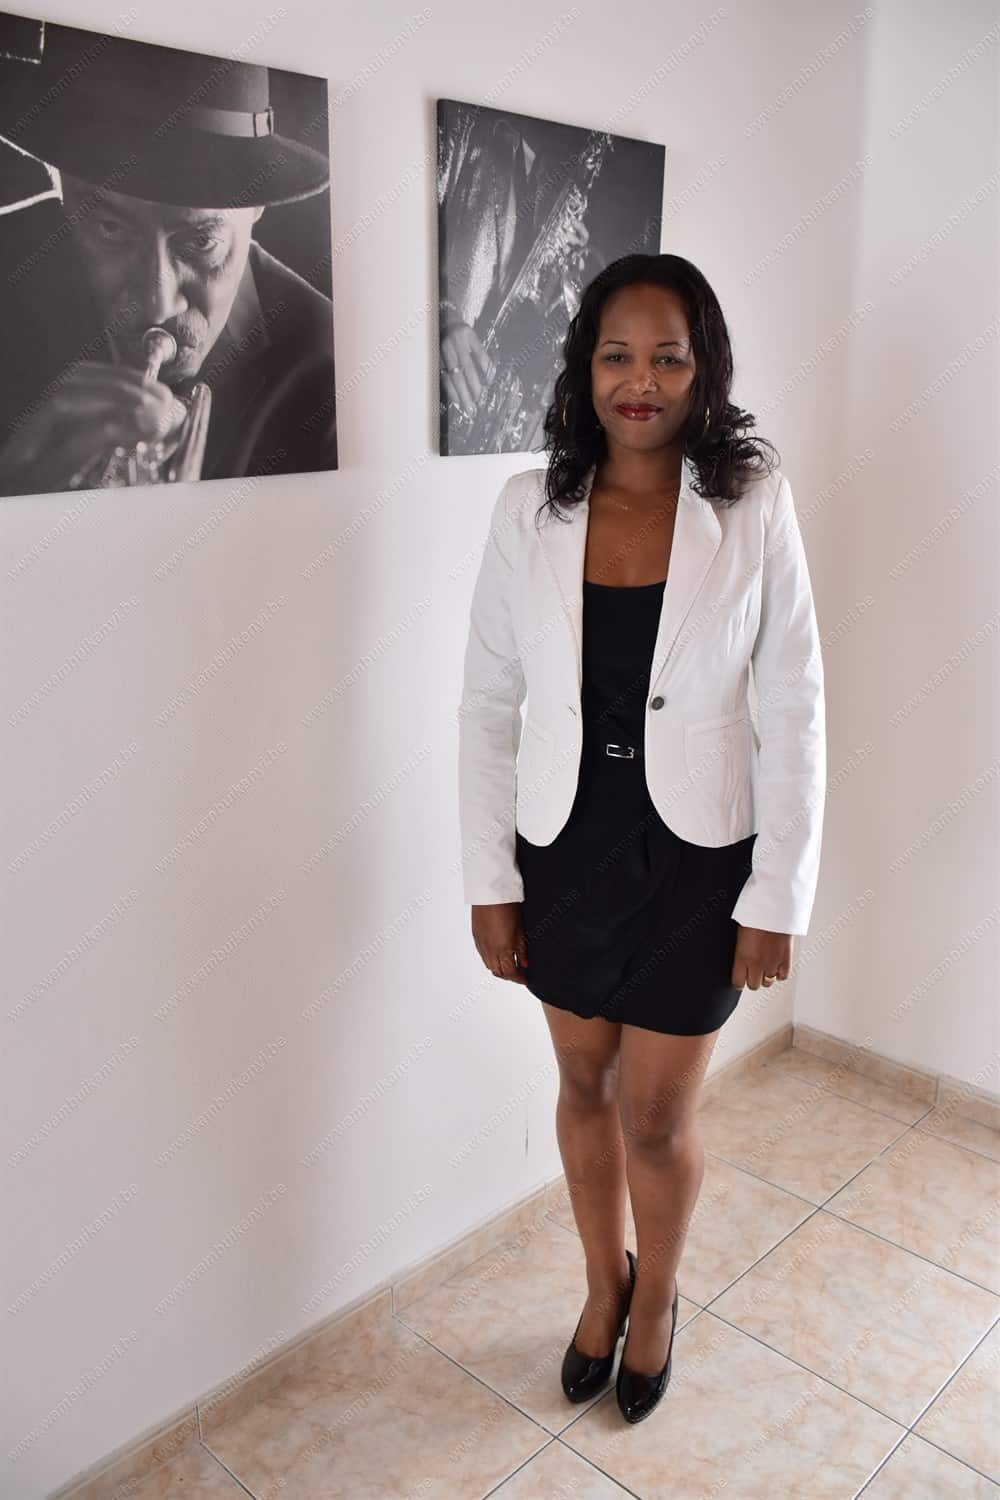 Complementing the look with a white blazer